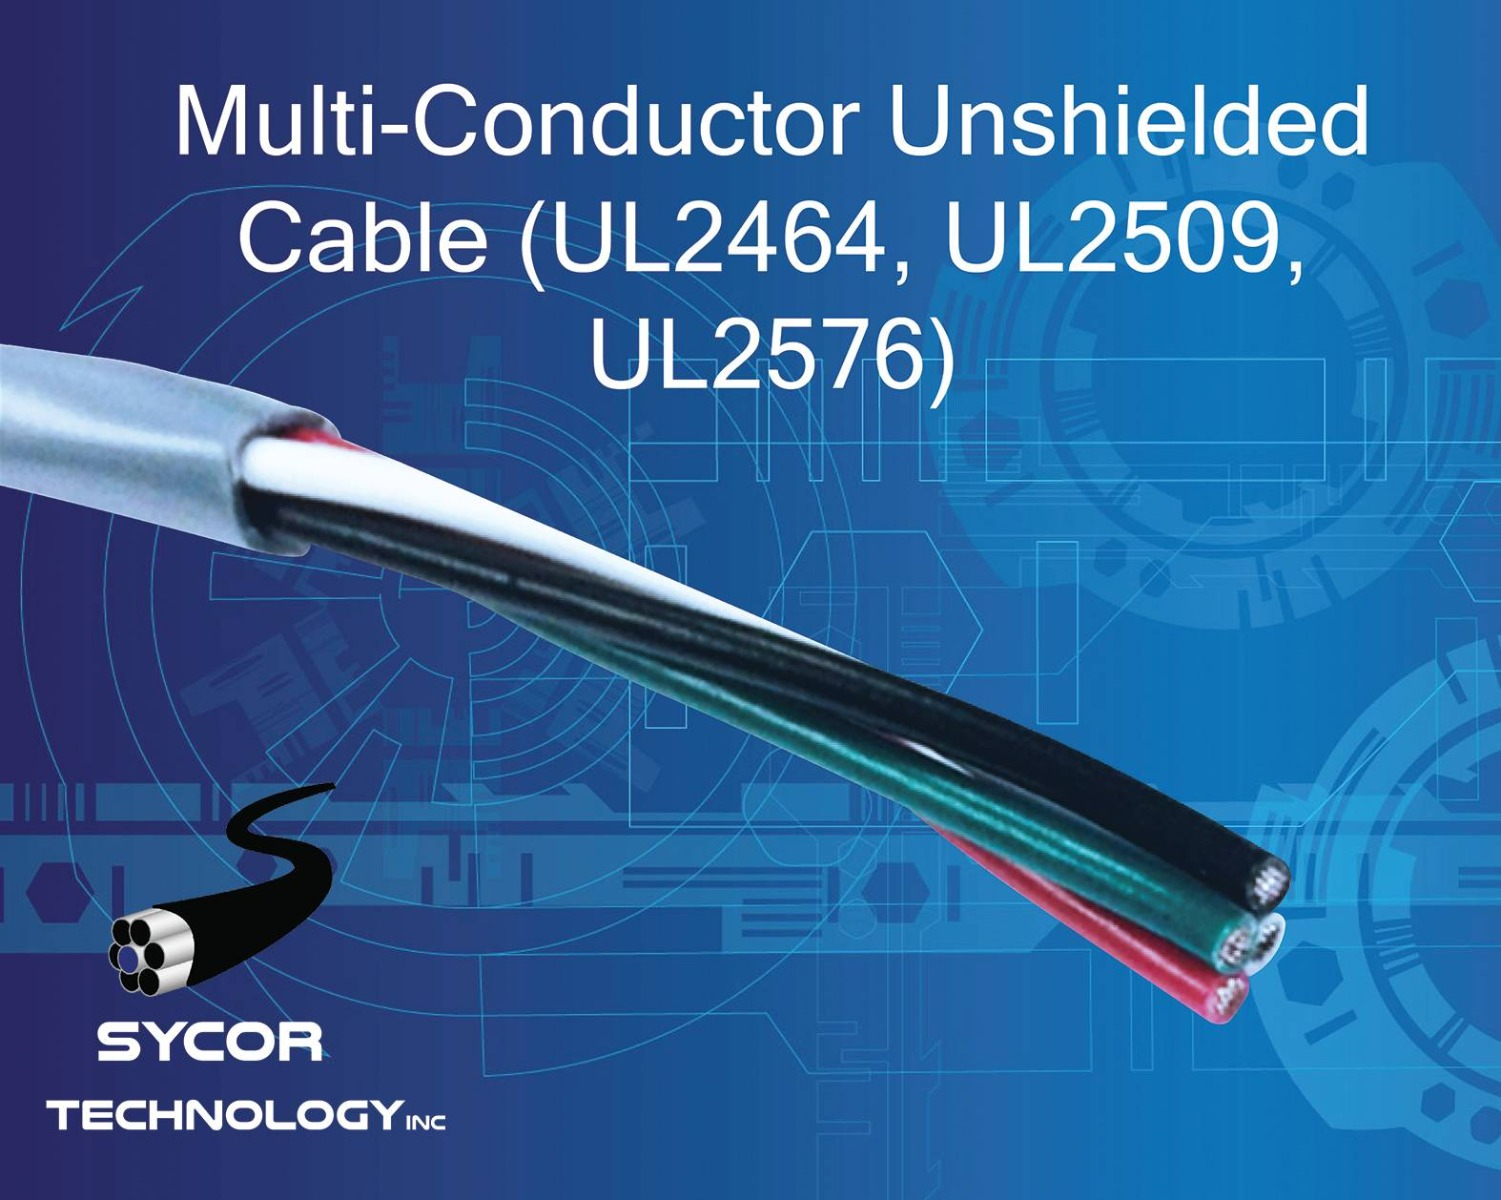 Multi-Conductor Unshielded Cable (UL2464, UL2509, UL2576)